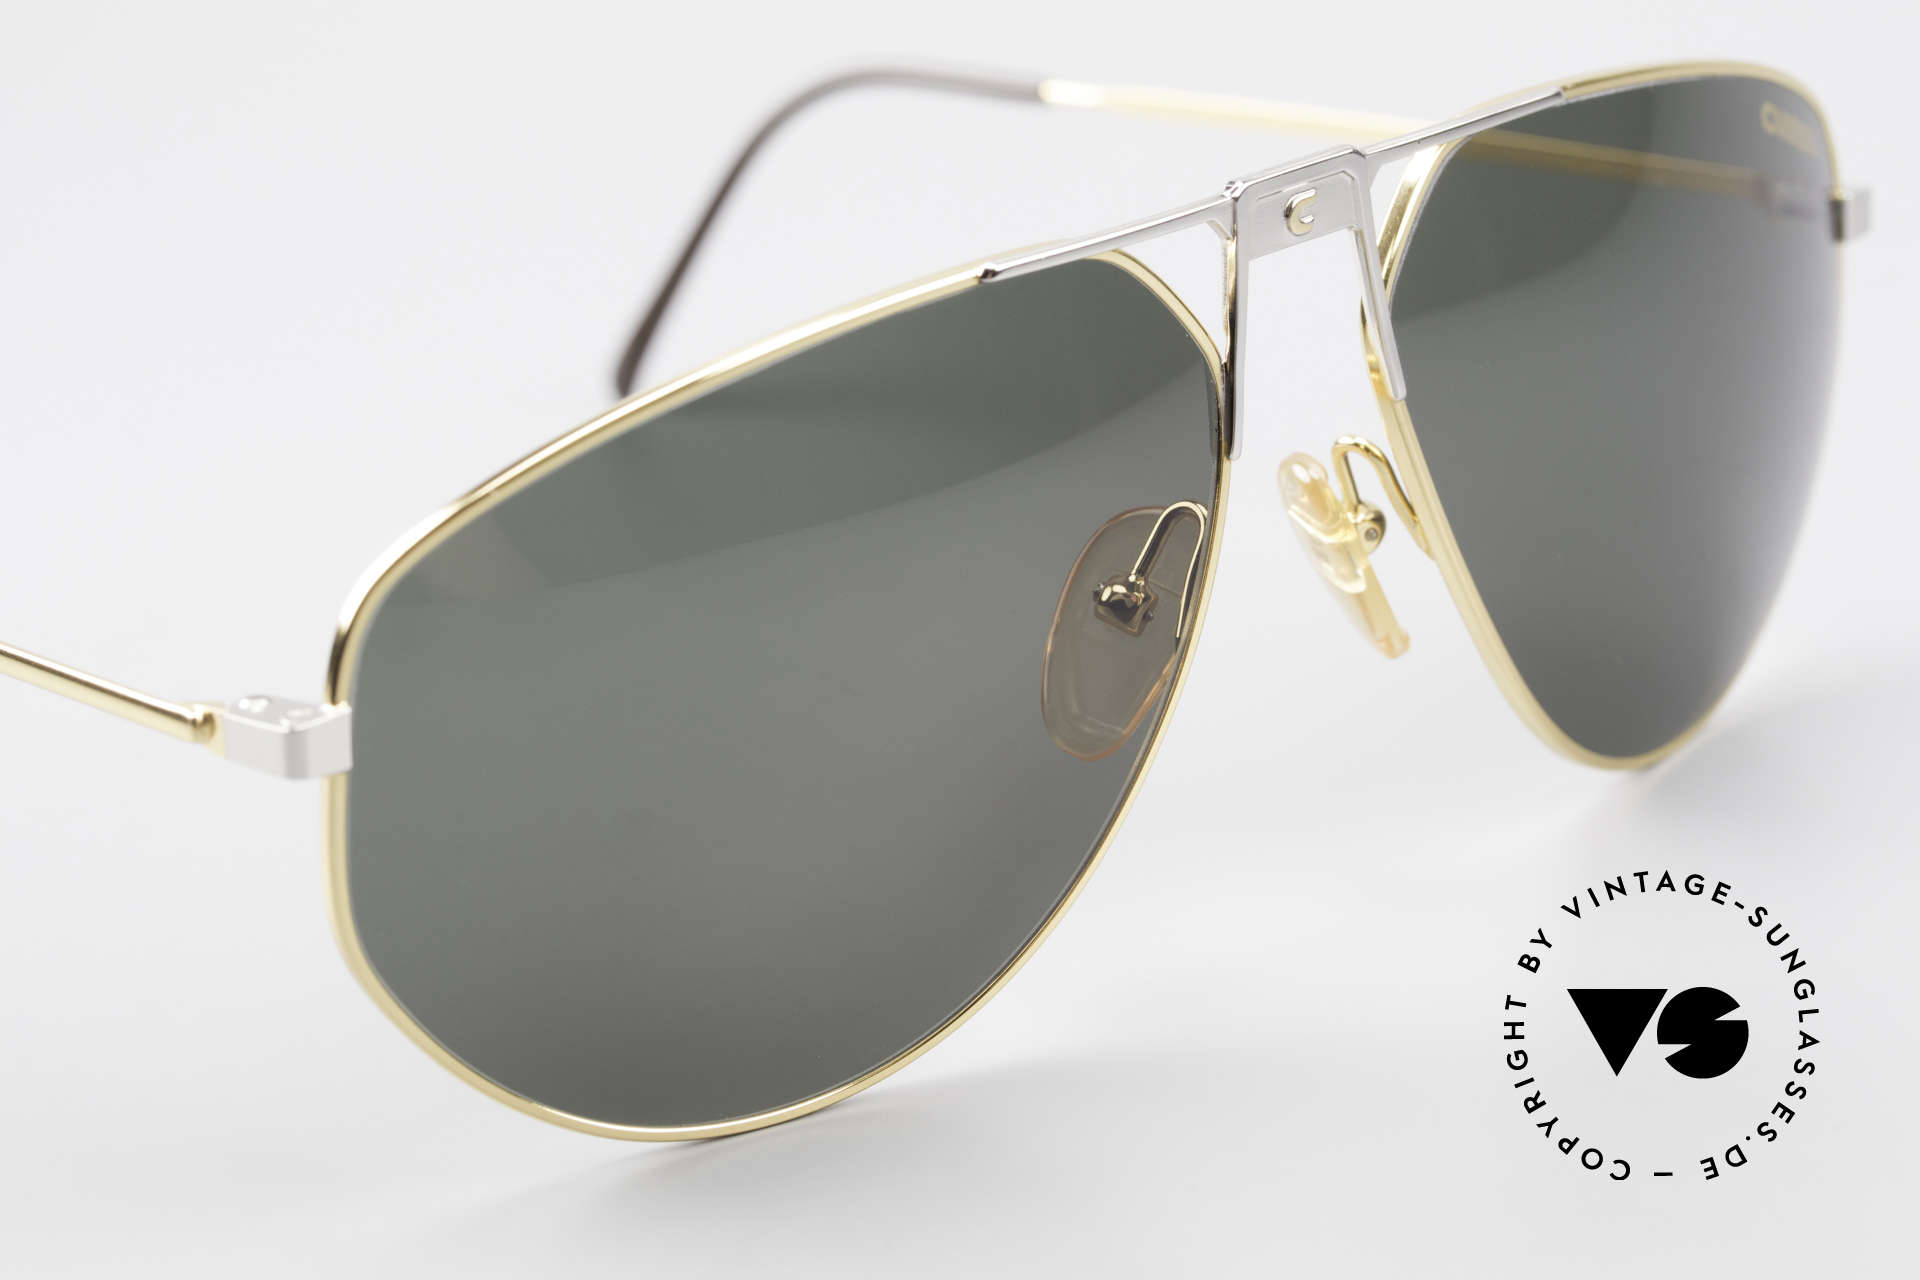 Carrera 5410 90's Sport Performance Shades, a 30 years old ORIGINAL and NO RETRO sunglasses!, Made for Men